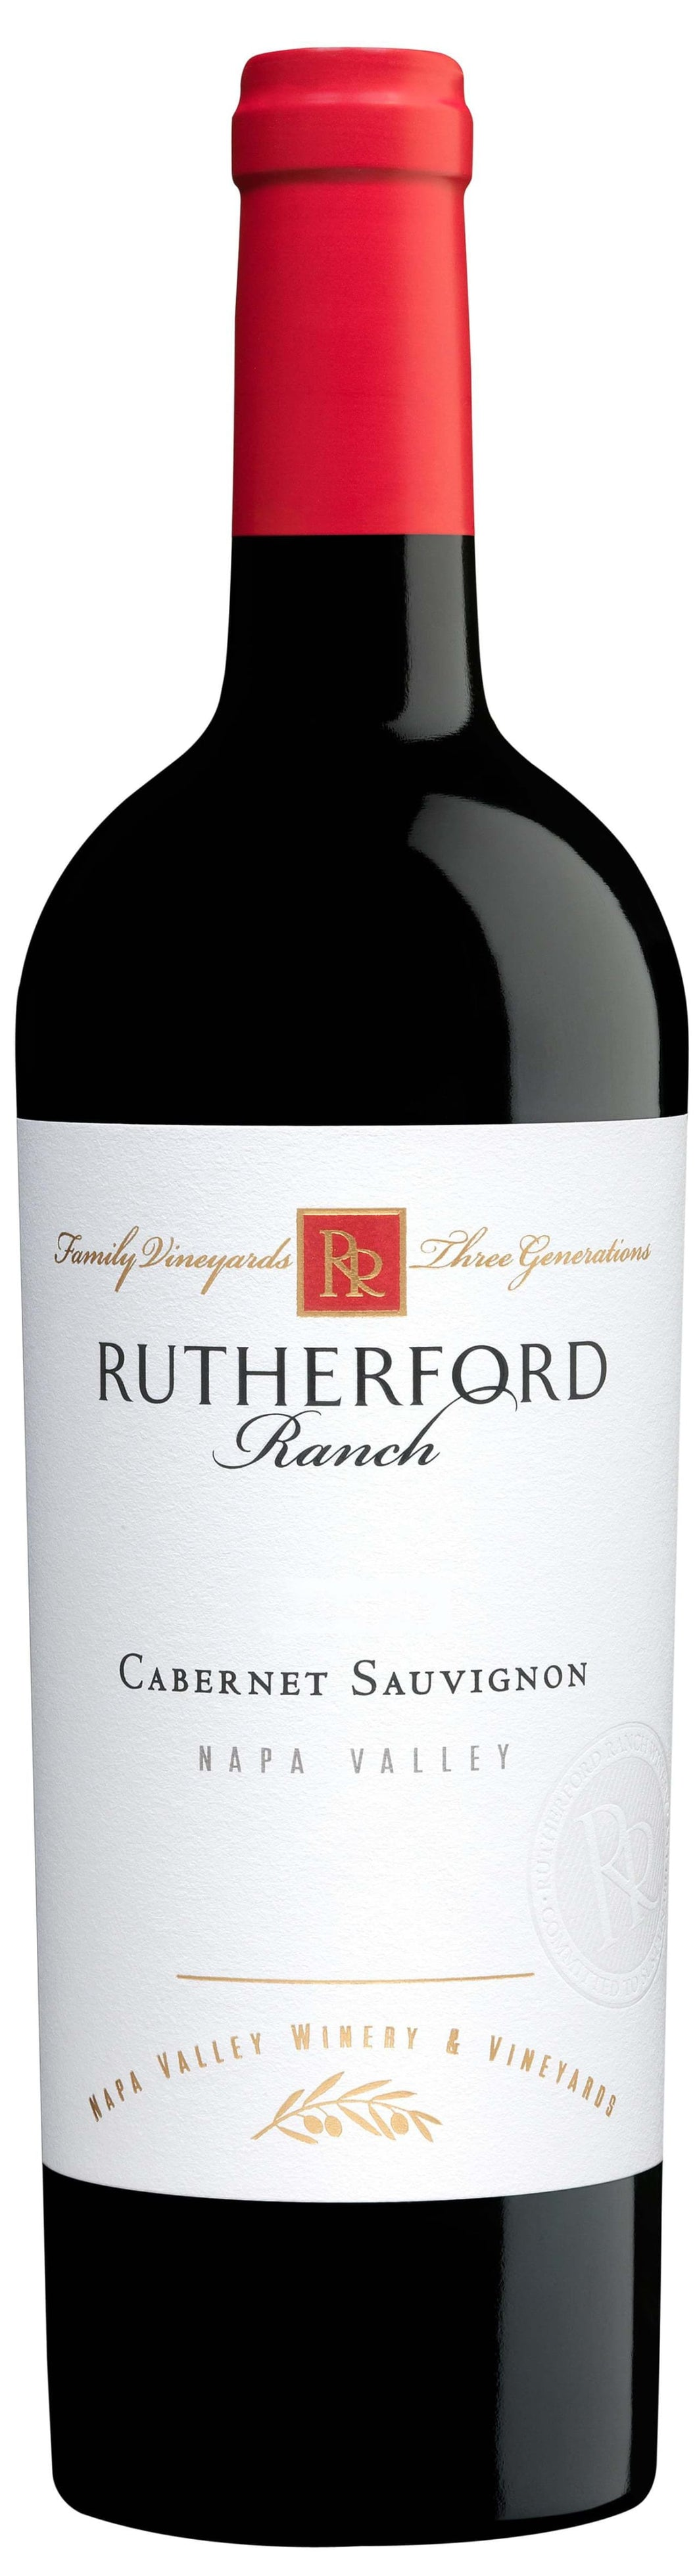 Rutherford Rancho Cabernet Sauvignon 2015 Napa Valley - Grapes & Hops Deli